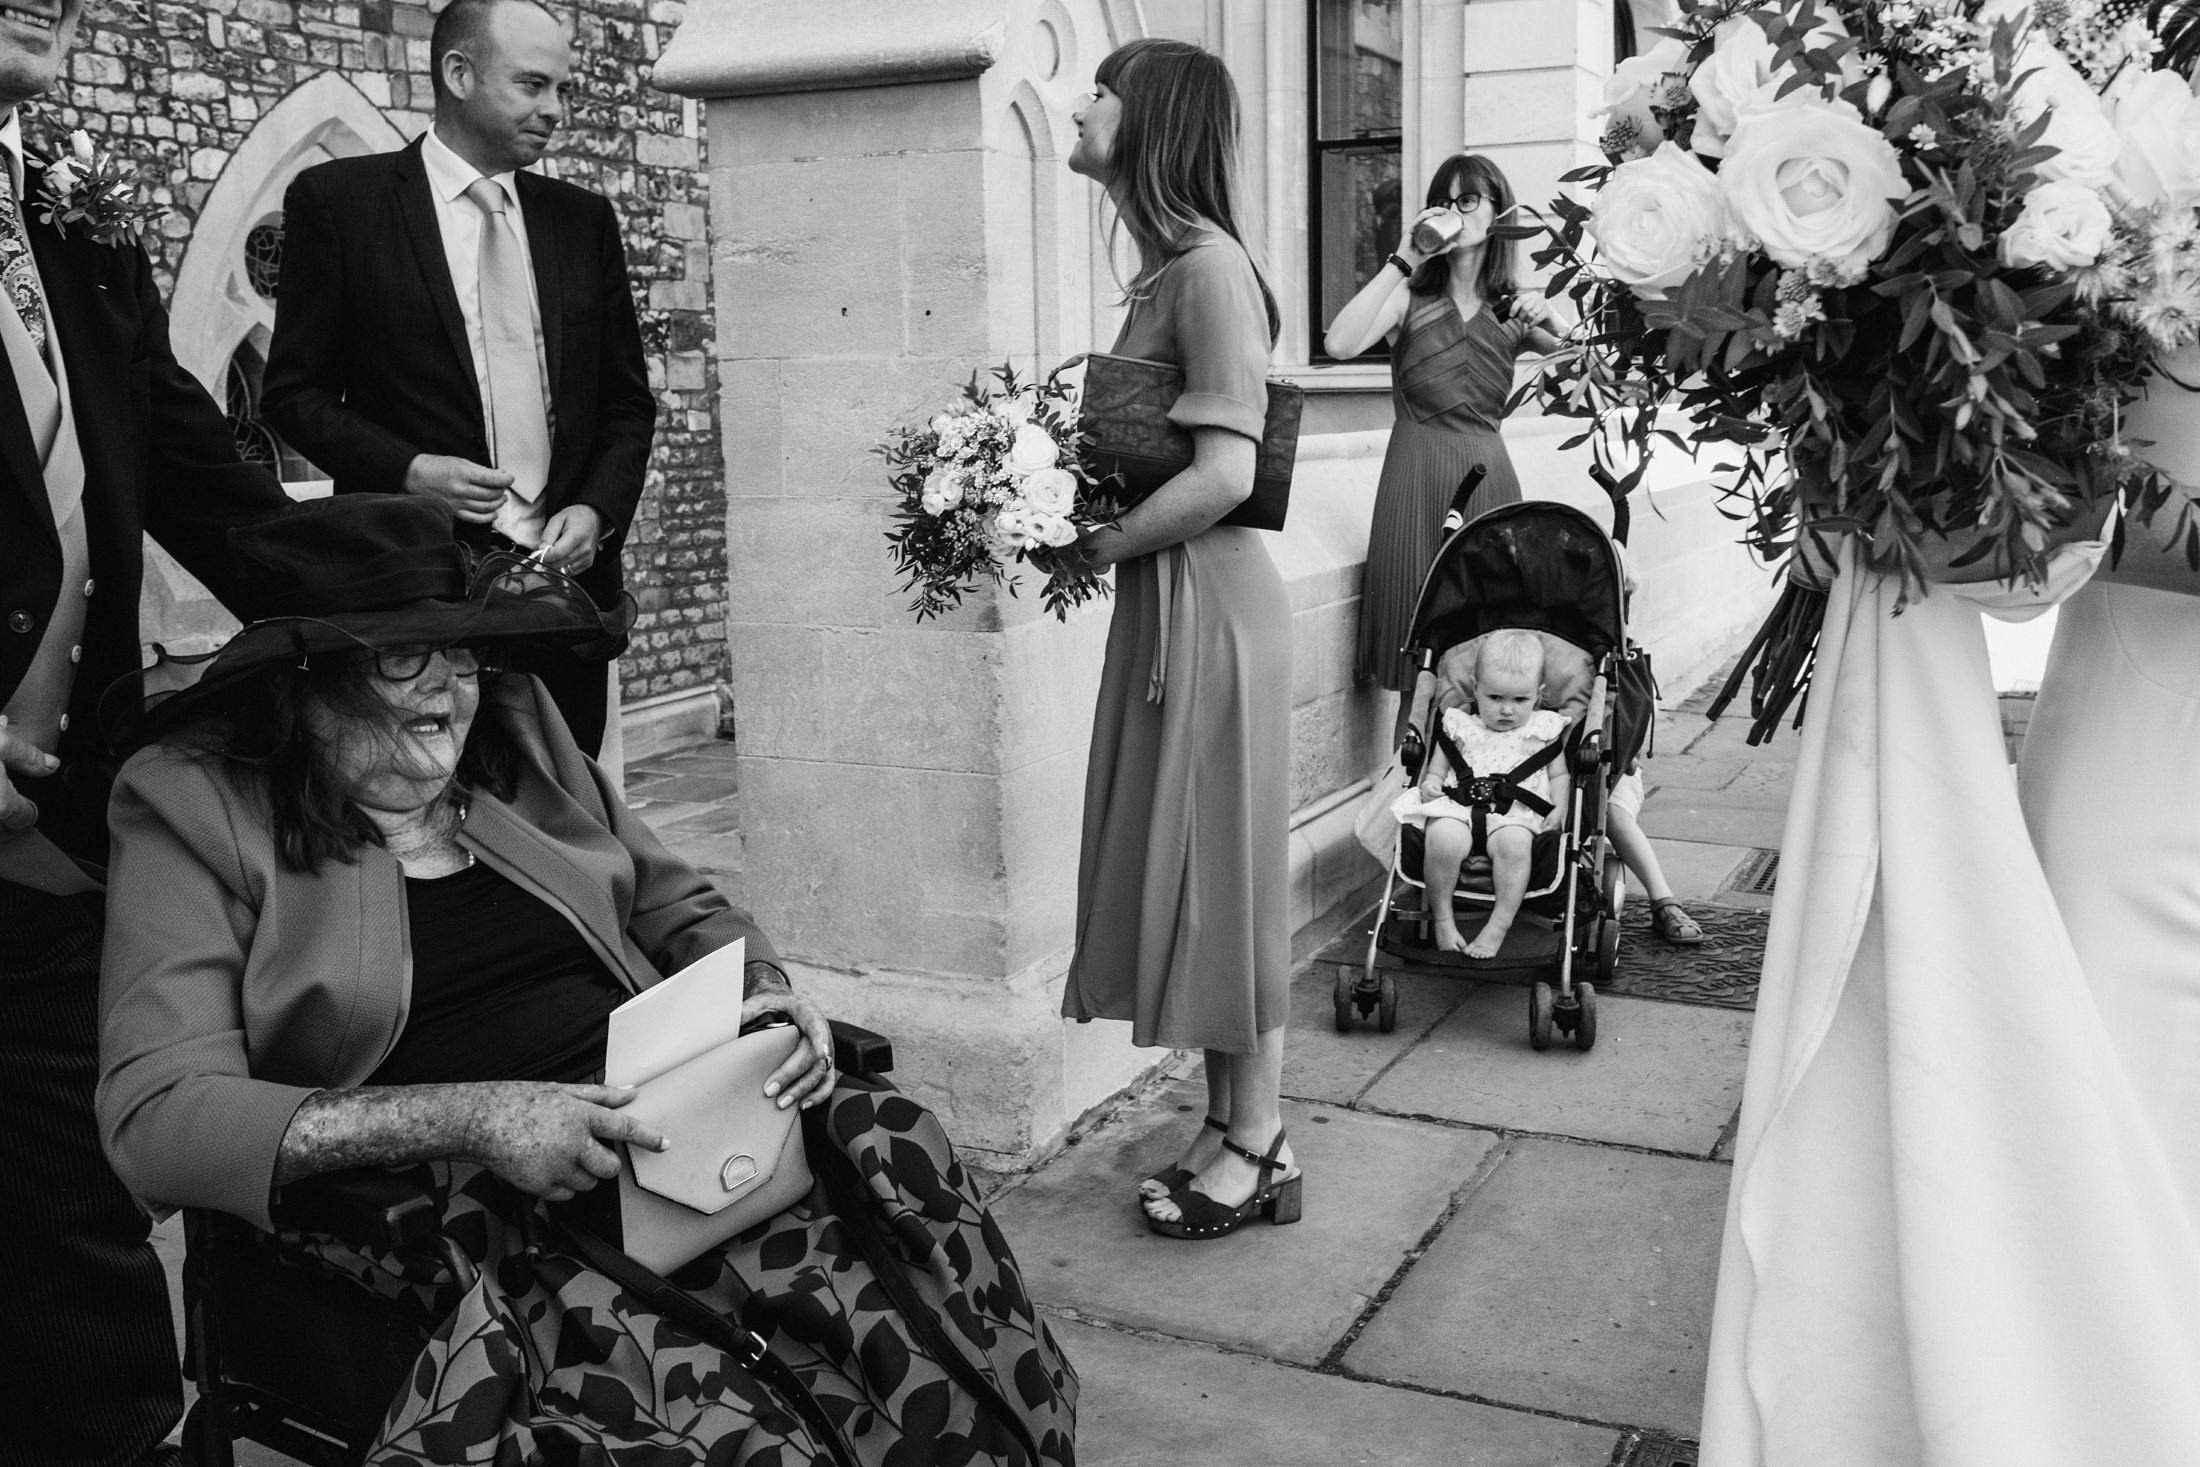 Black & White documentary wedding photograph at a London micro wedding. (Right) we can see the bridal bouquet, being held by the bride off frame. In the background a young child in a pram looks toward the camera, a third leg mysteriously coming from behind the pram whilst the children's mother takes a drink behind them. (Centre) a bridesmaid looks back towards the church entrance. Left a woman in a wheelchair provides symmetry with the pram, flaked by groomsmen.